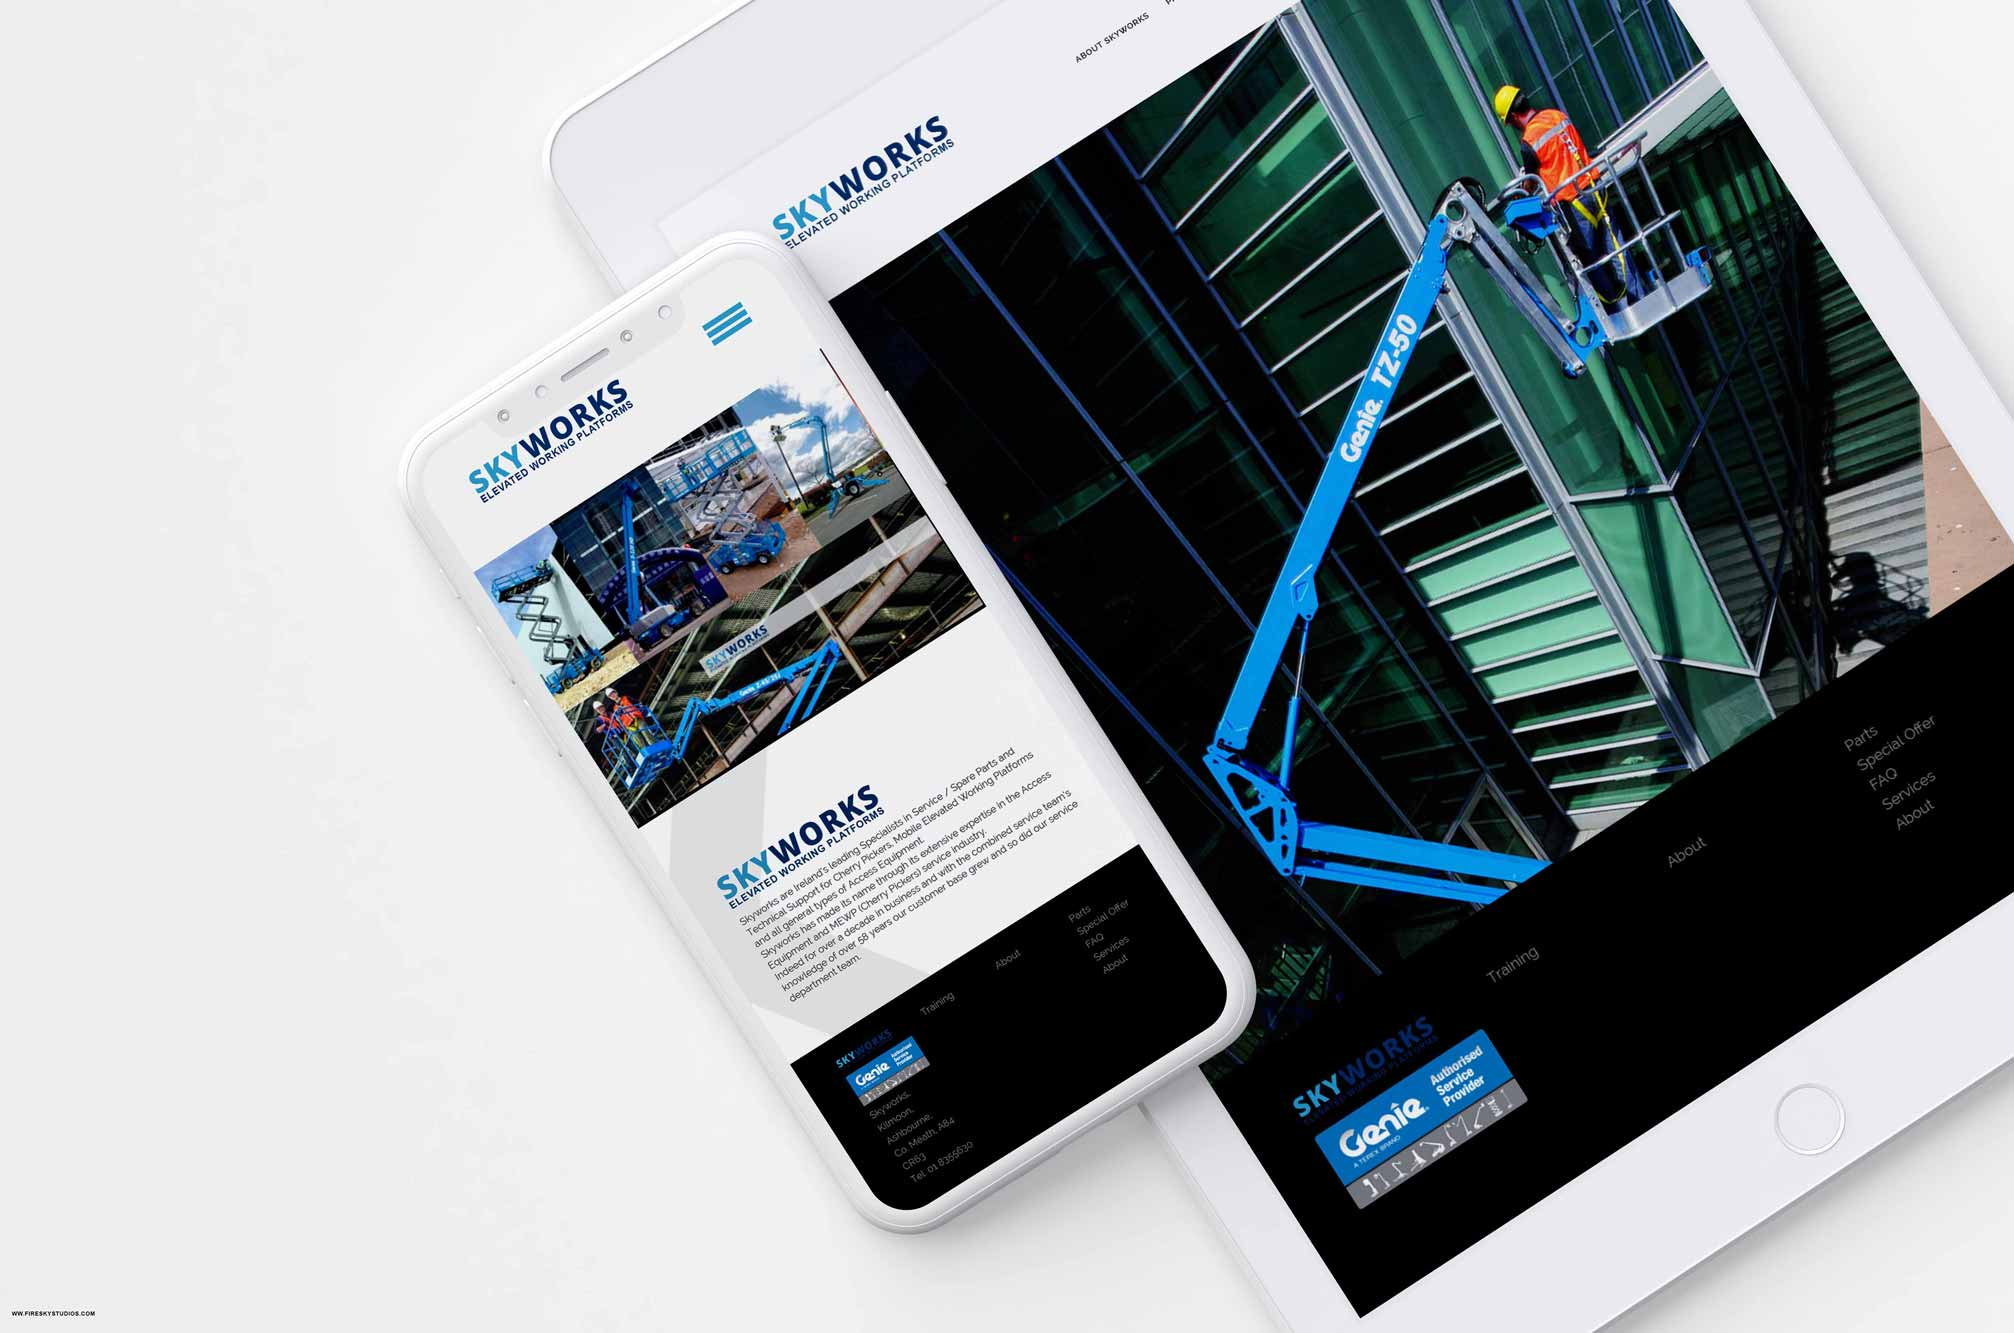 adaptive website layout on mobile for Dublin business Skyworks